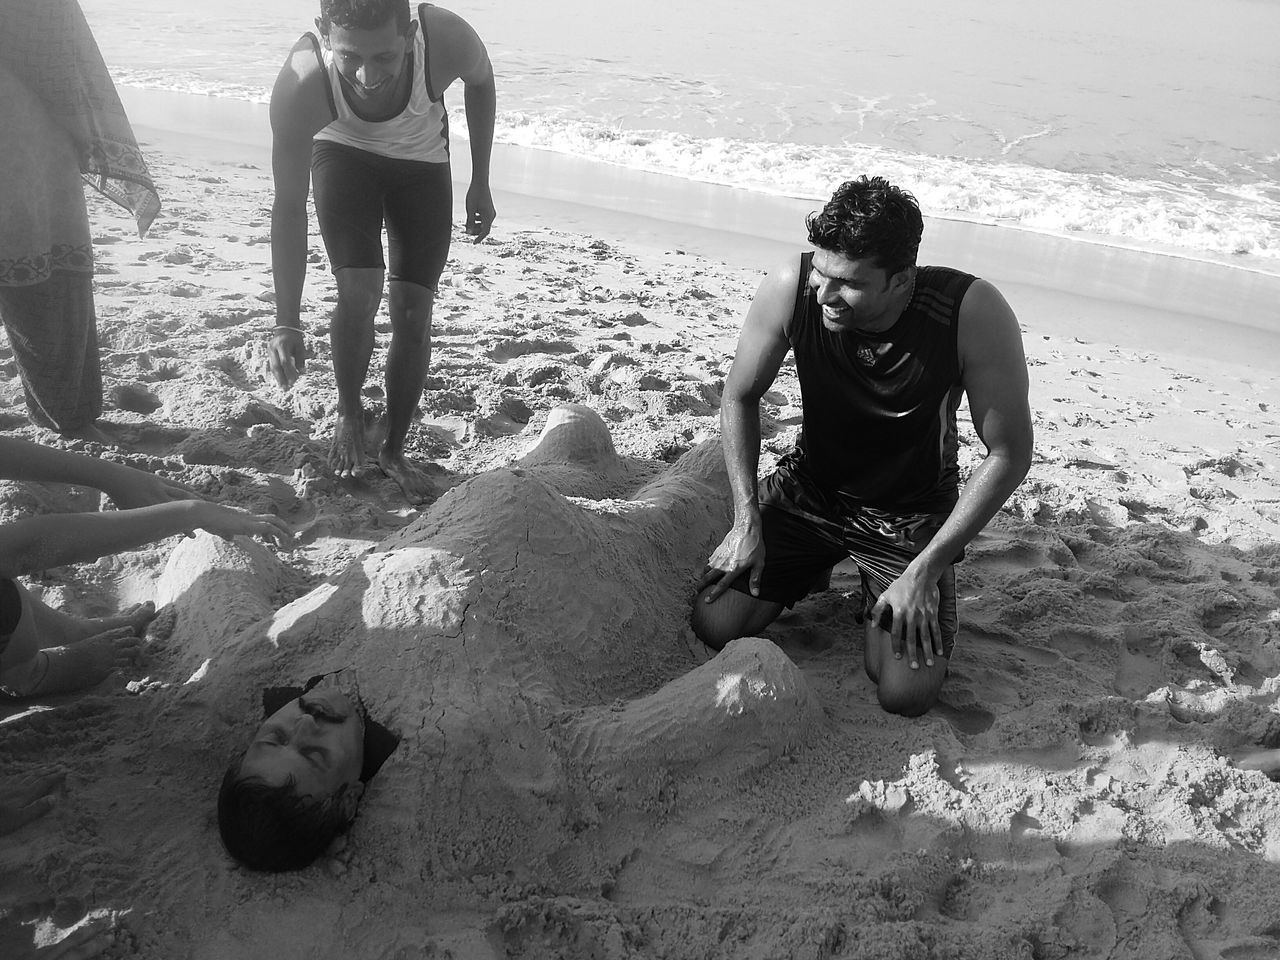 FriEnDs CaN'T Be MorE NauGhTy..ThaN ThiS...😂😂😂 Bnw_friday_eyeemchallenge Friends Sand Art Sand Art On The Beach Check This Out Still Life Enjoying Friendship Black&white Exceptional Photographs EyeEm Best Shots EyeEm Masterclass Black And White Light And Dark Day EyeEm Gallery Outdoors People And Art In My Point Of View Scenic Sea Beachtime Togetherness EyeEmNewHere Kerala